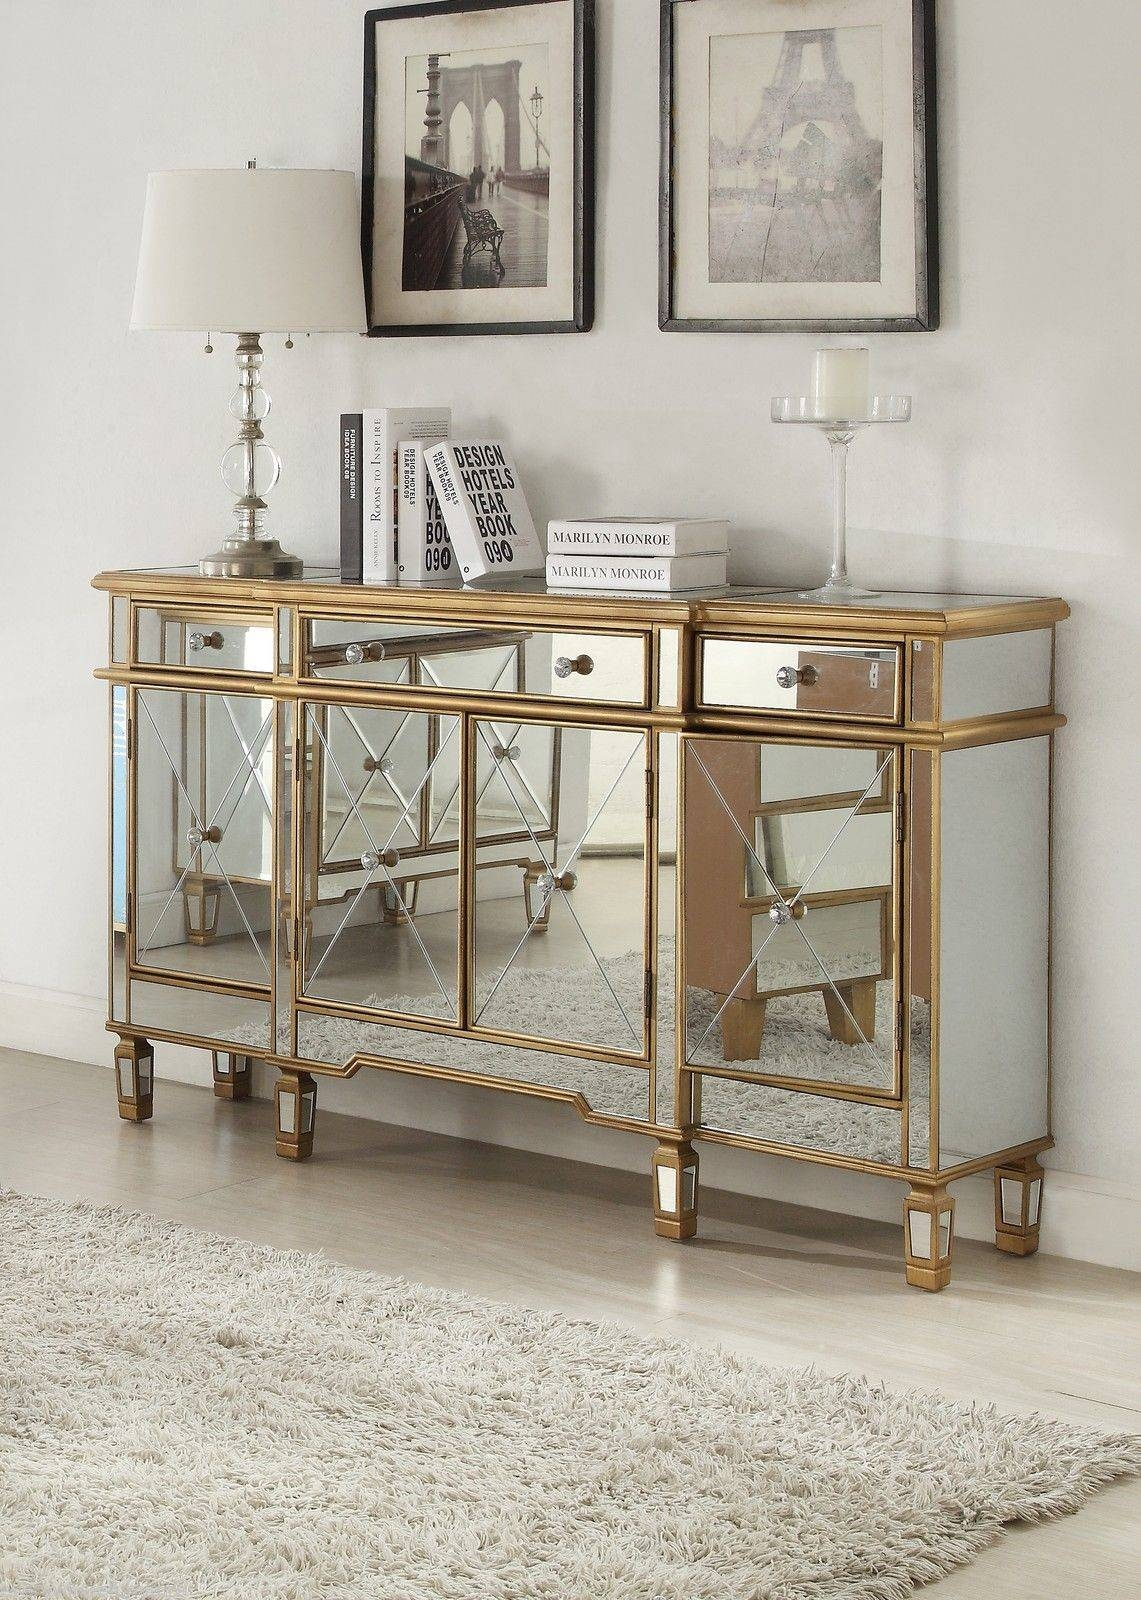 Furniture: Gorgeous Mirrored Buffet For Living Room Design With With Regard To Mirrored Sideboards Furniture (View 3 of 15)